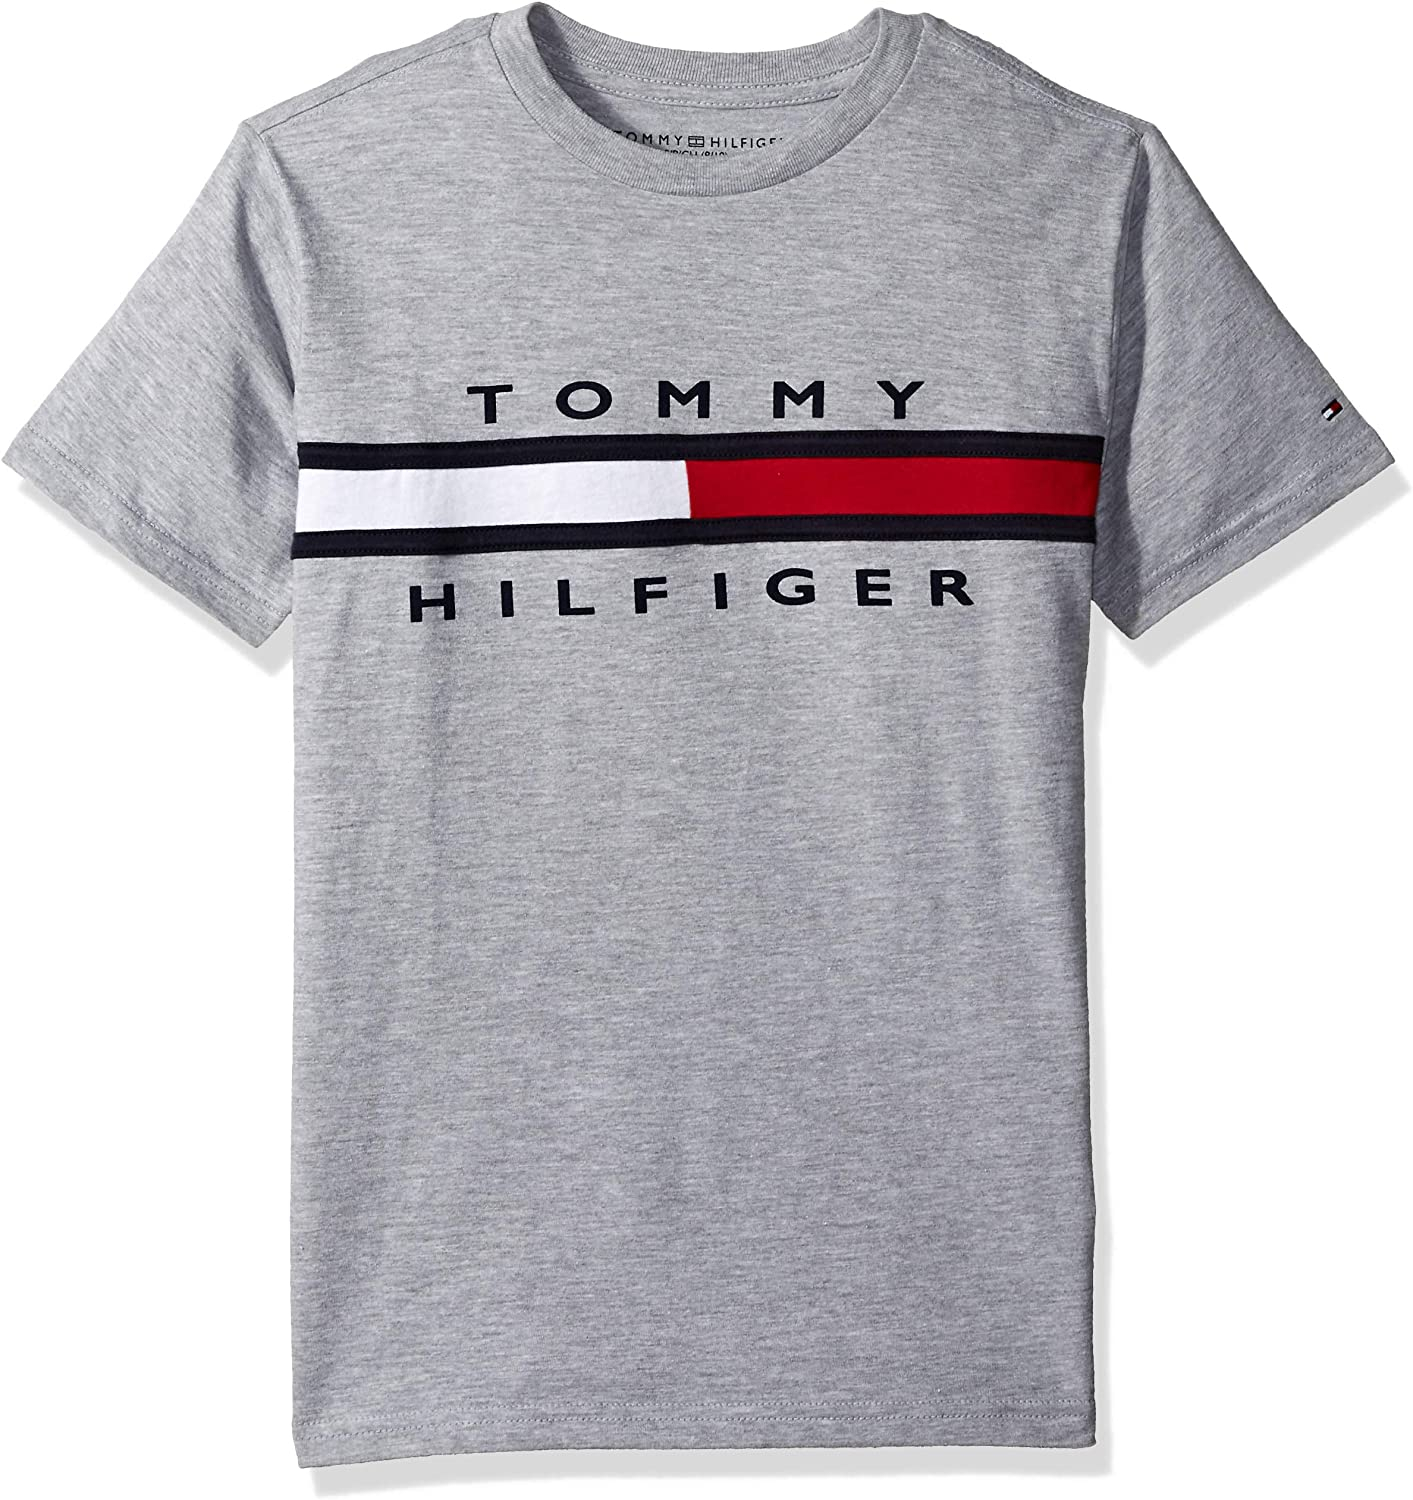 Tommy Hilfiger Boys Short Sleeve Crew-Neck T-Shirt, 100% Cotton, Solid Color with Signature Embroidered Logo